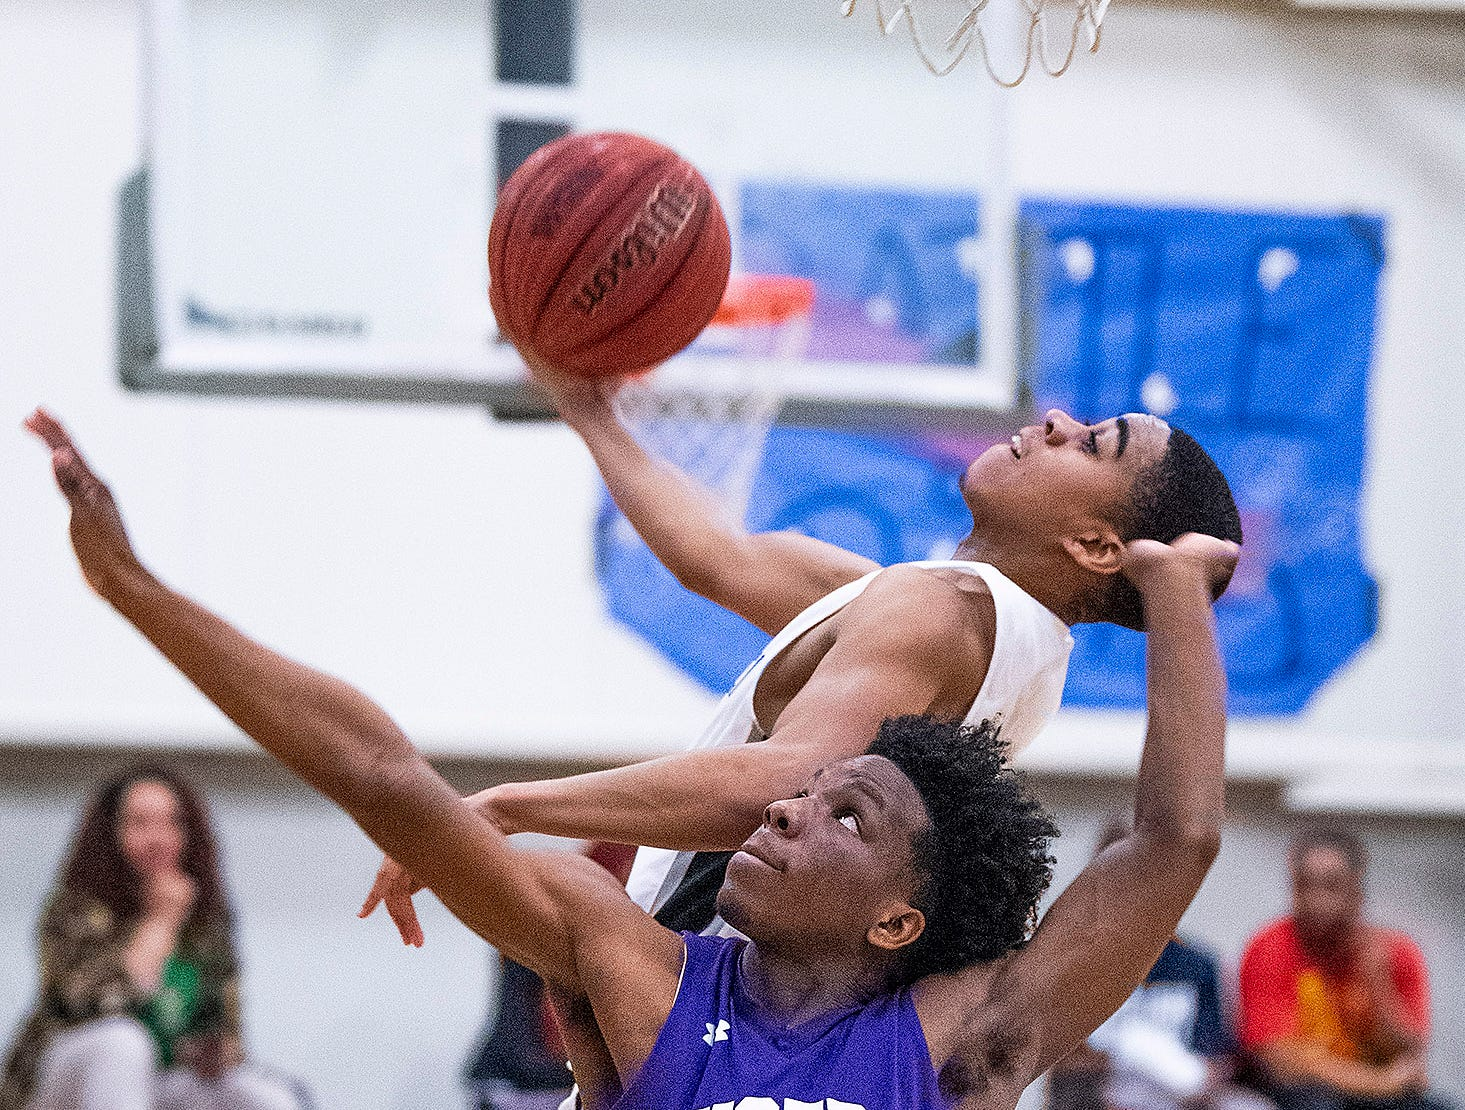 Tallassee's Jaleel Dumas (3) defends against Brewbaker Tech's Evan Carter (1) at the BrewTech campus in Montgomery, Ala., on Thursday February 7, 2019.